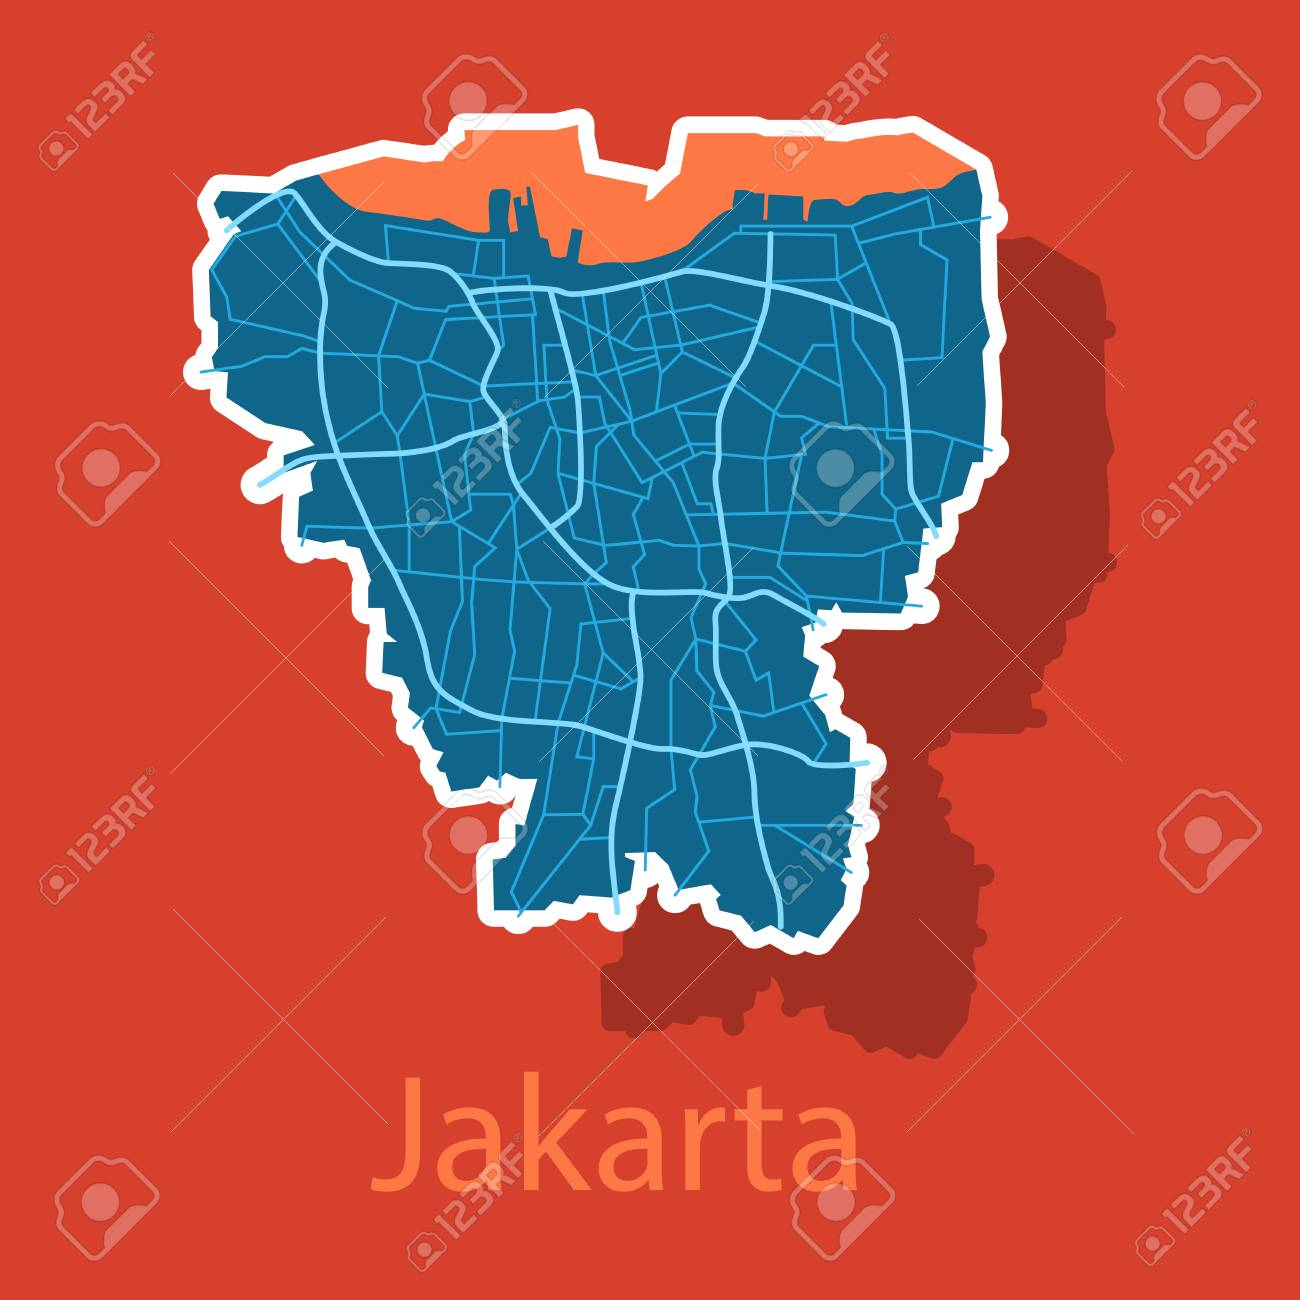 Sticker Outline Map Of The Indonesian Capital Jakarta Royalty Free